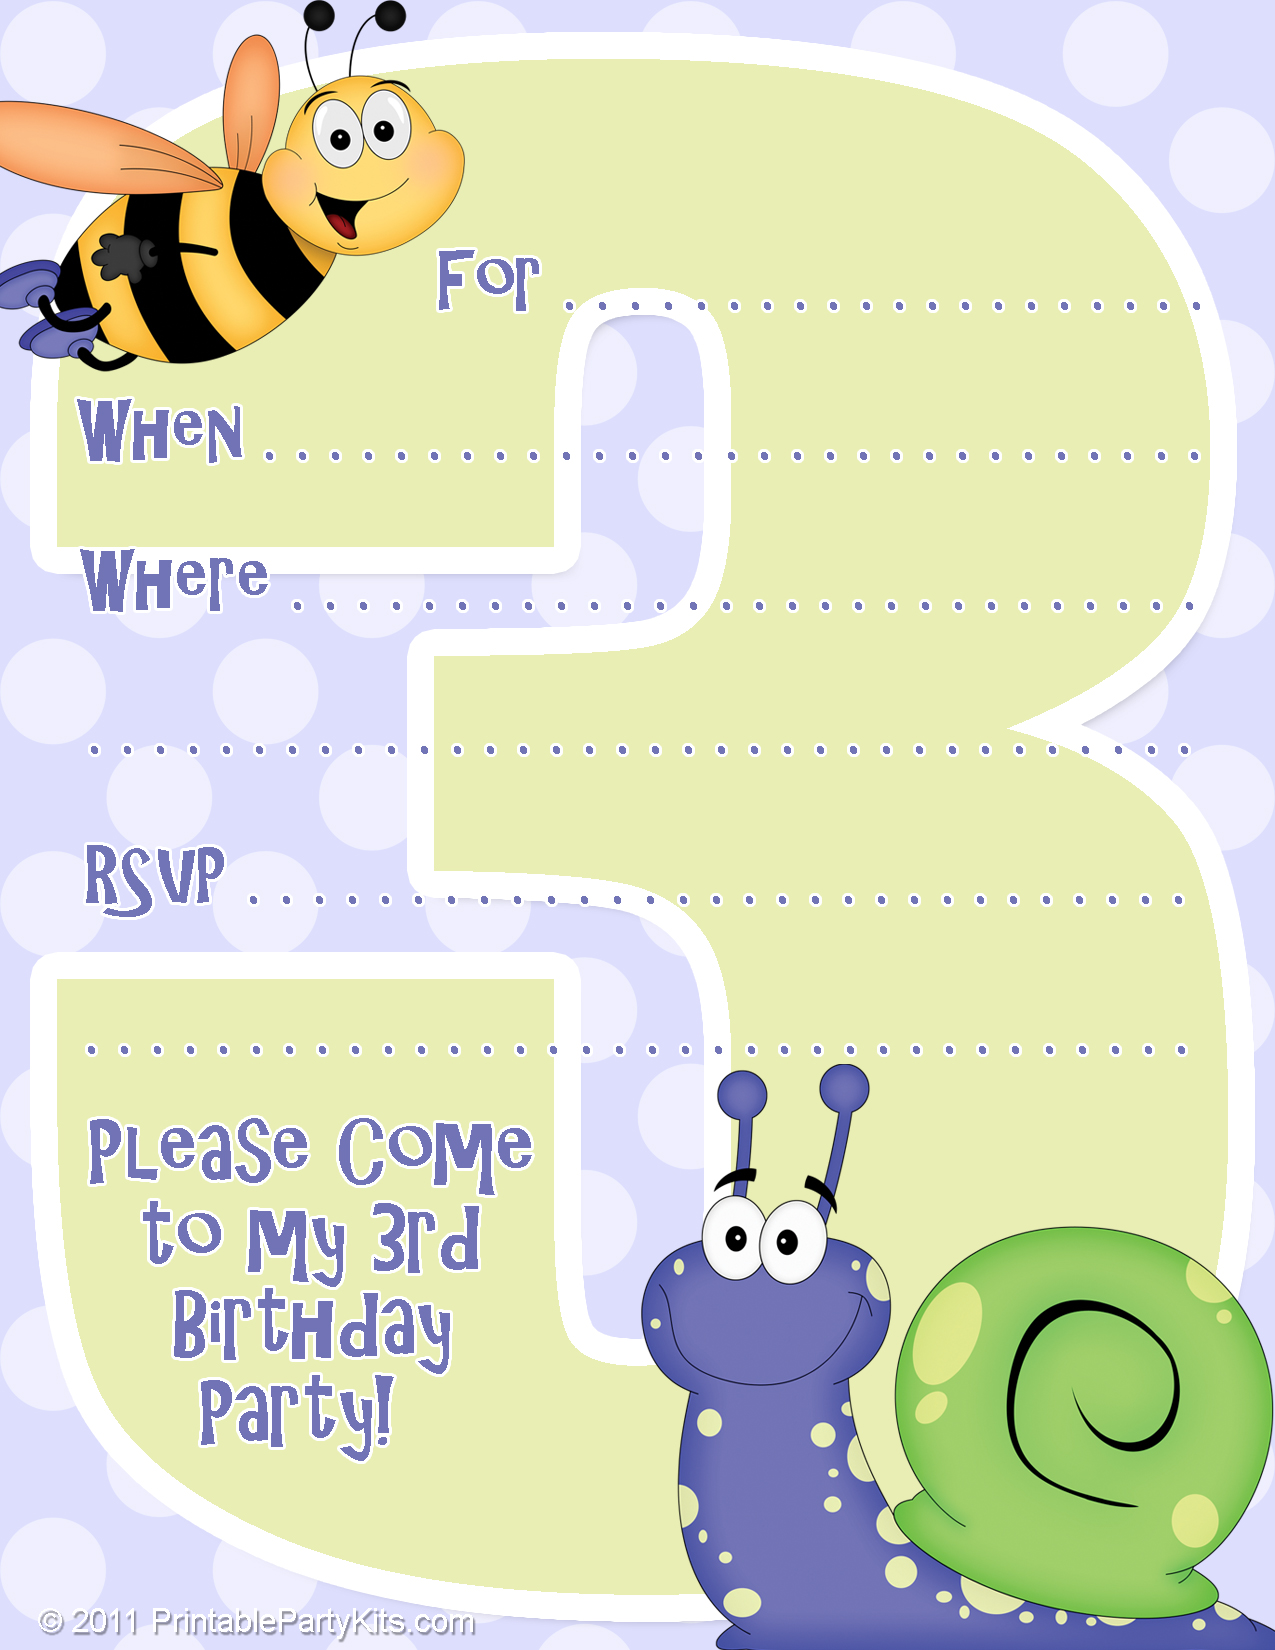 birthday party invitation cards free download - Besik.eighty3.co